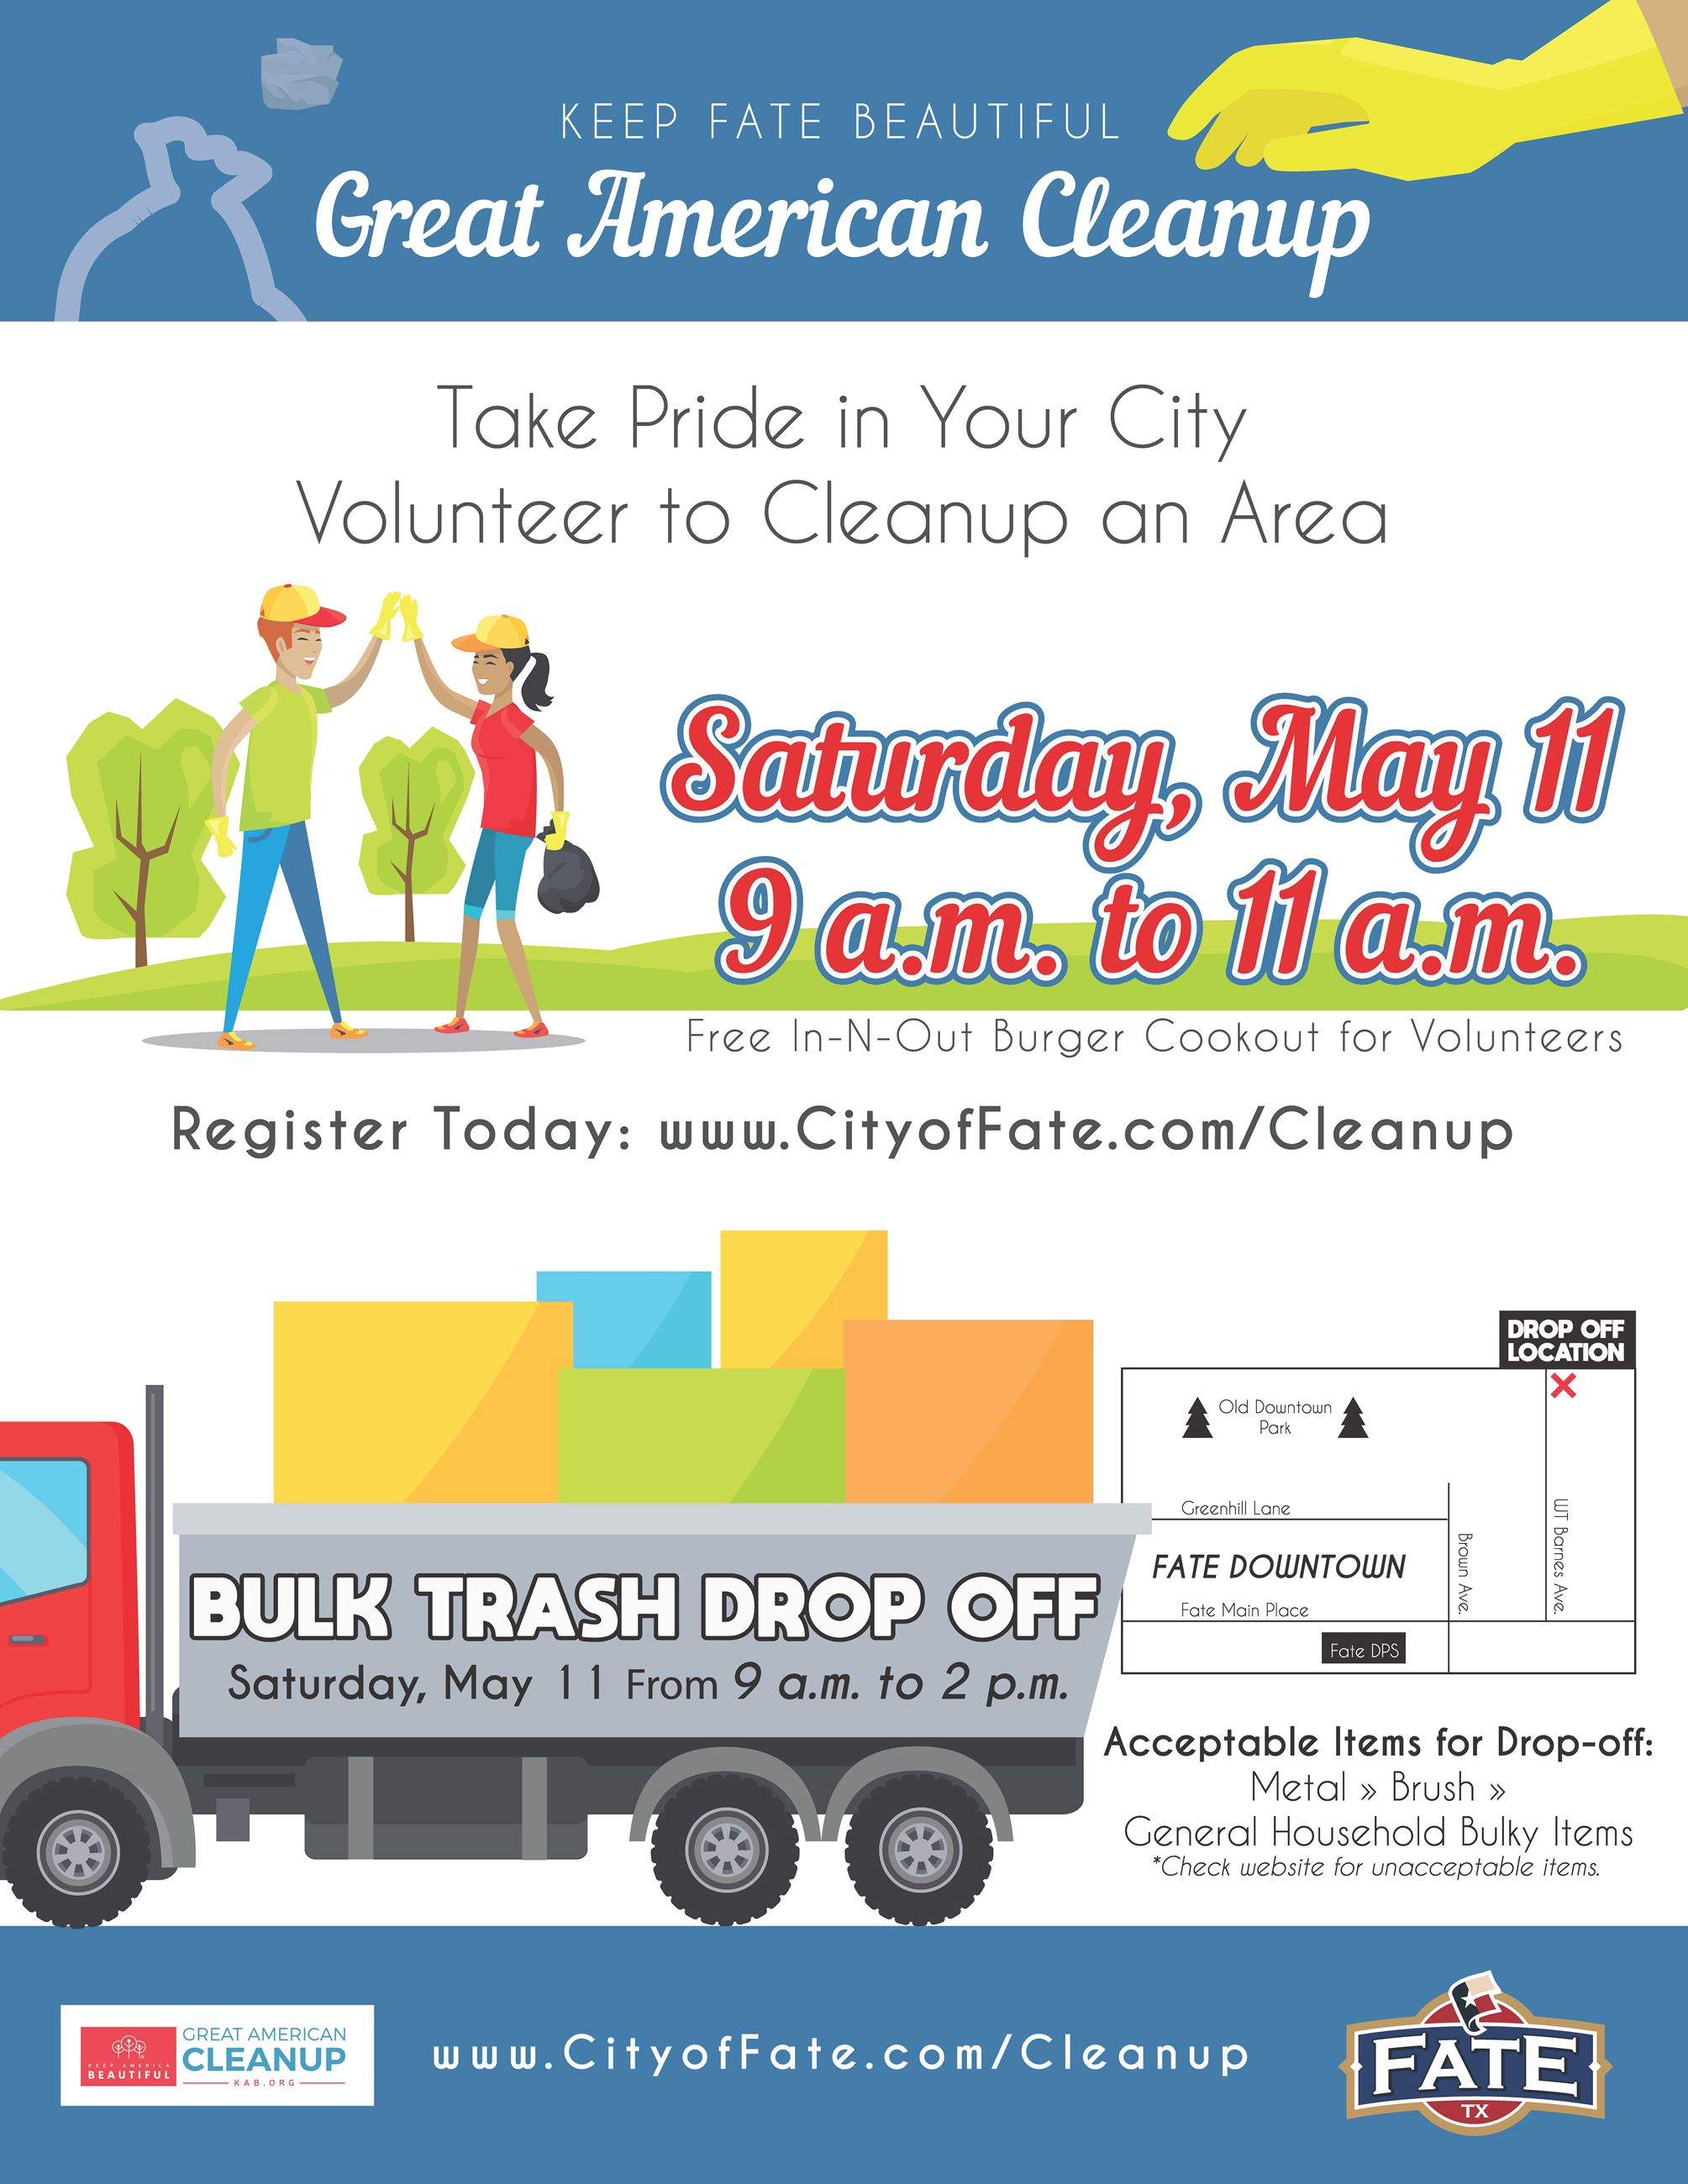 Great American Cleanup Flier